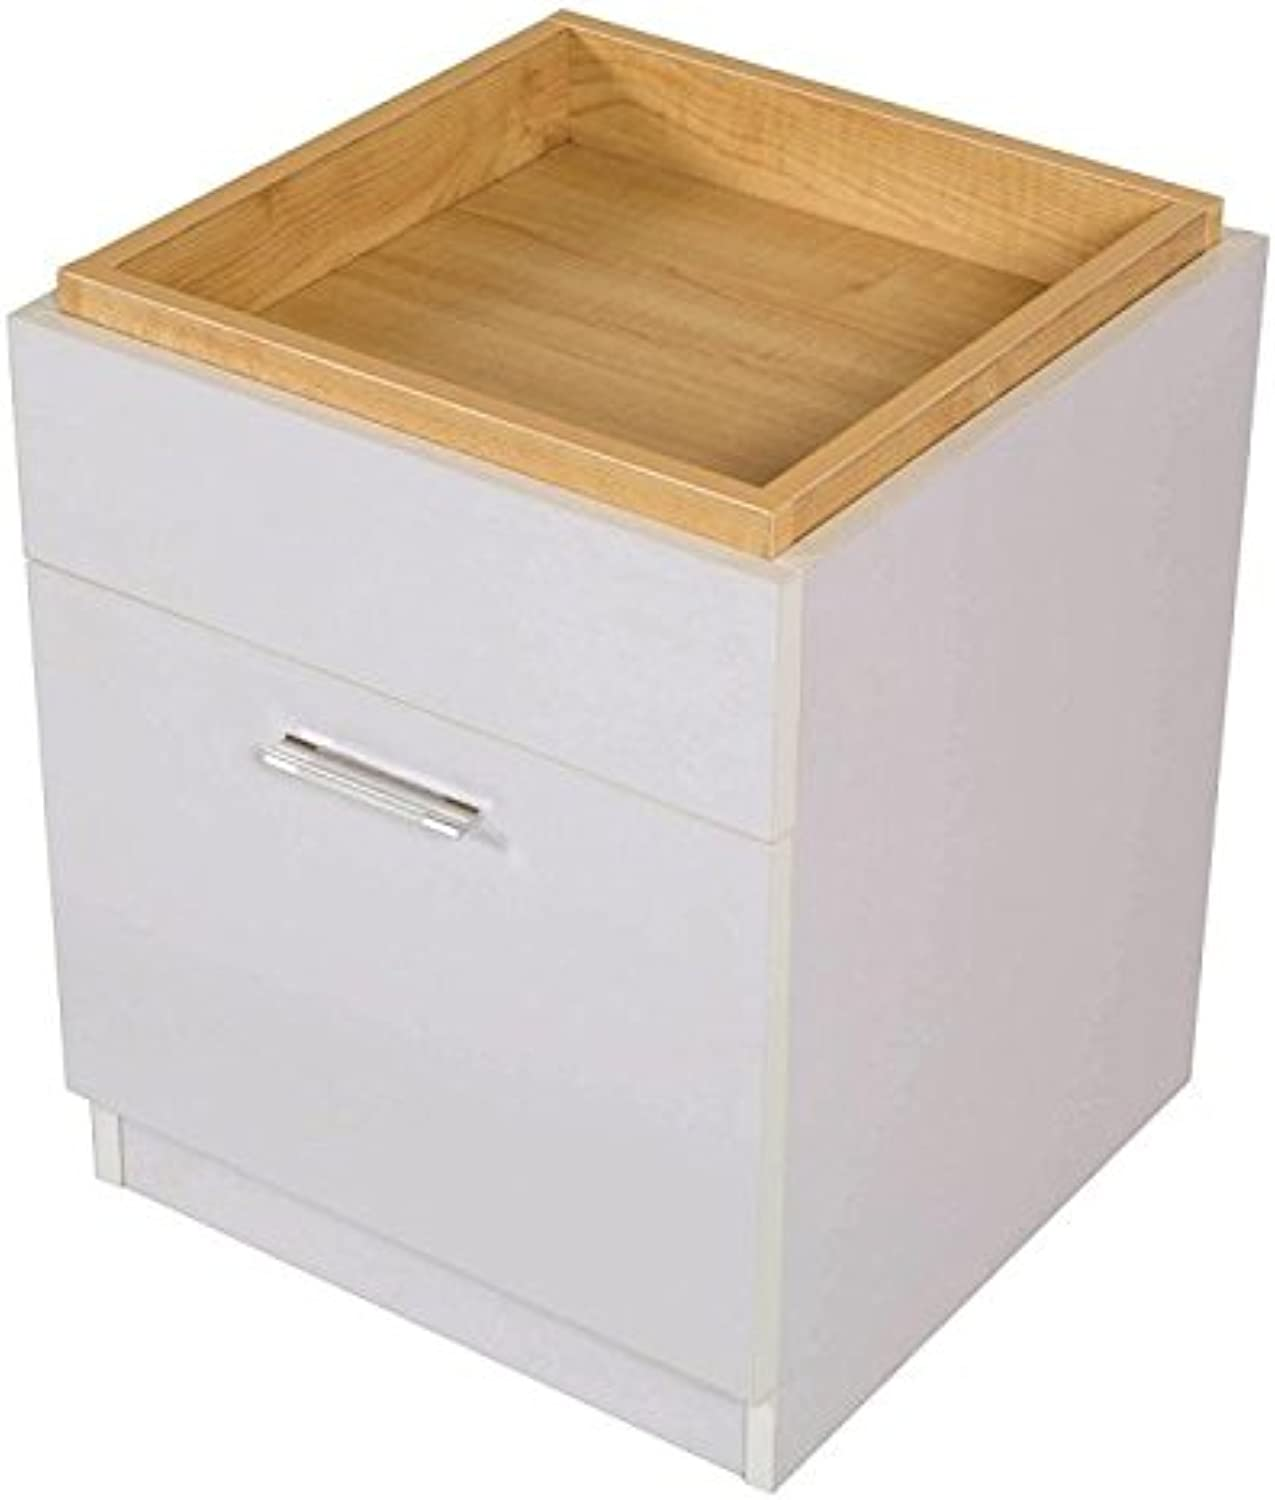 Emily bedside table with storage top & drawer, white